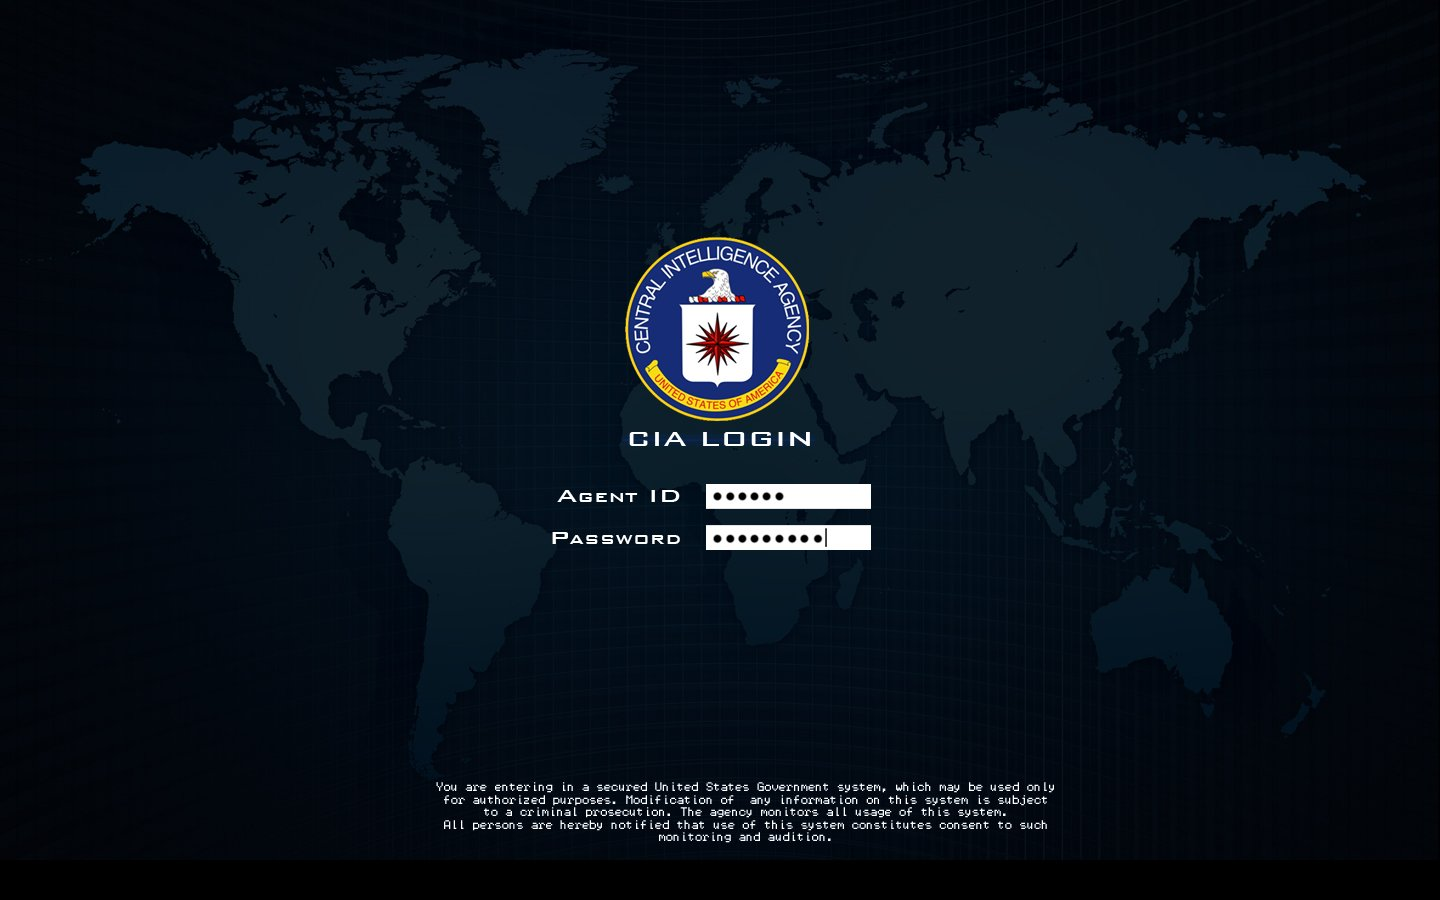 Cia Grs Wallpaper: [43+] CIA Desktop Wallpaper On WallpaperSafari